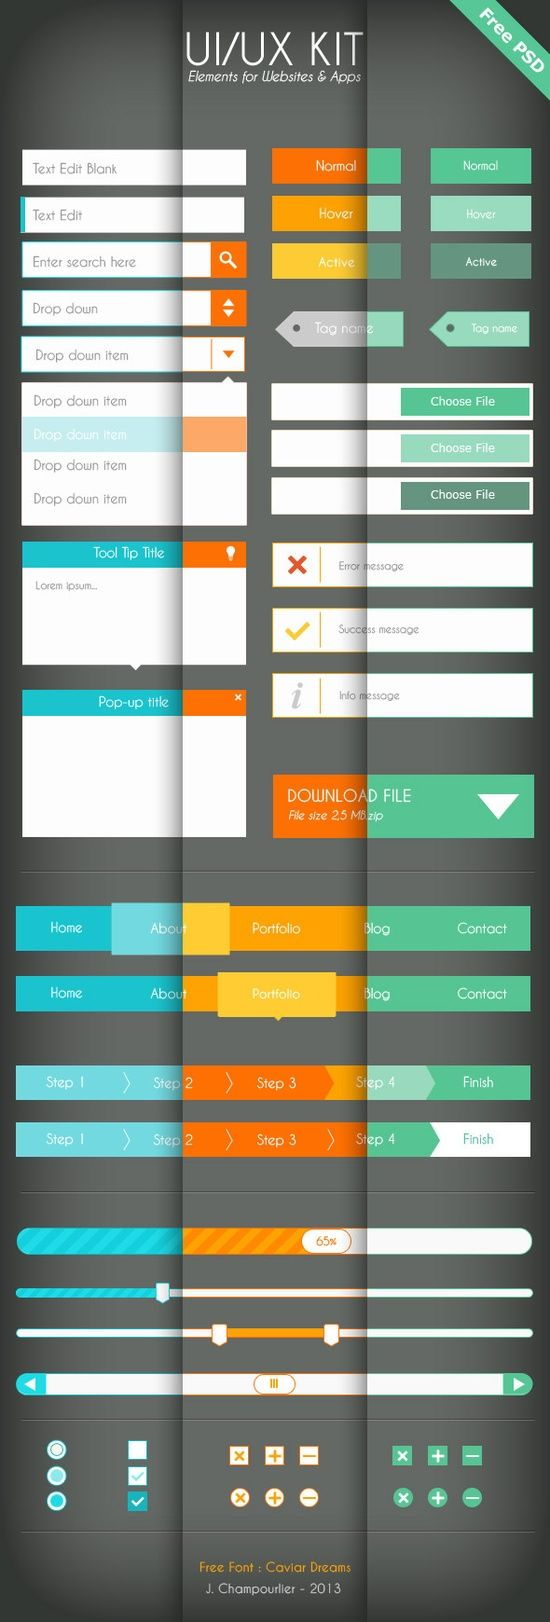 Some interesting tidbits here, just worth referencing later, some for myself  UI/UX Flat design - Free PSD by Julie Champourlier